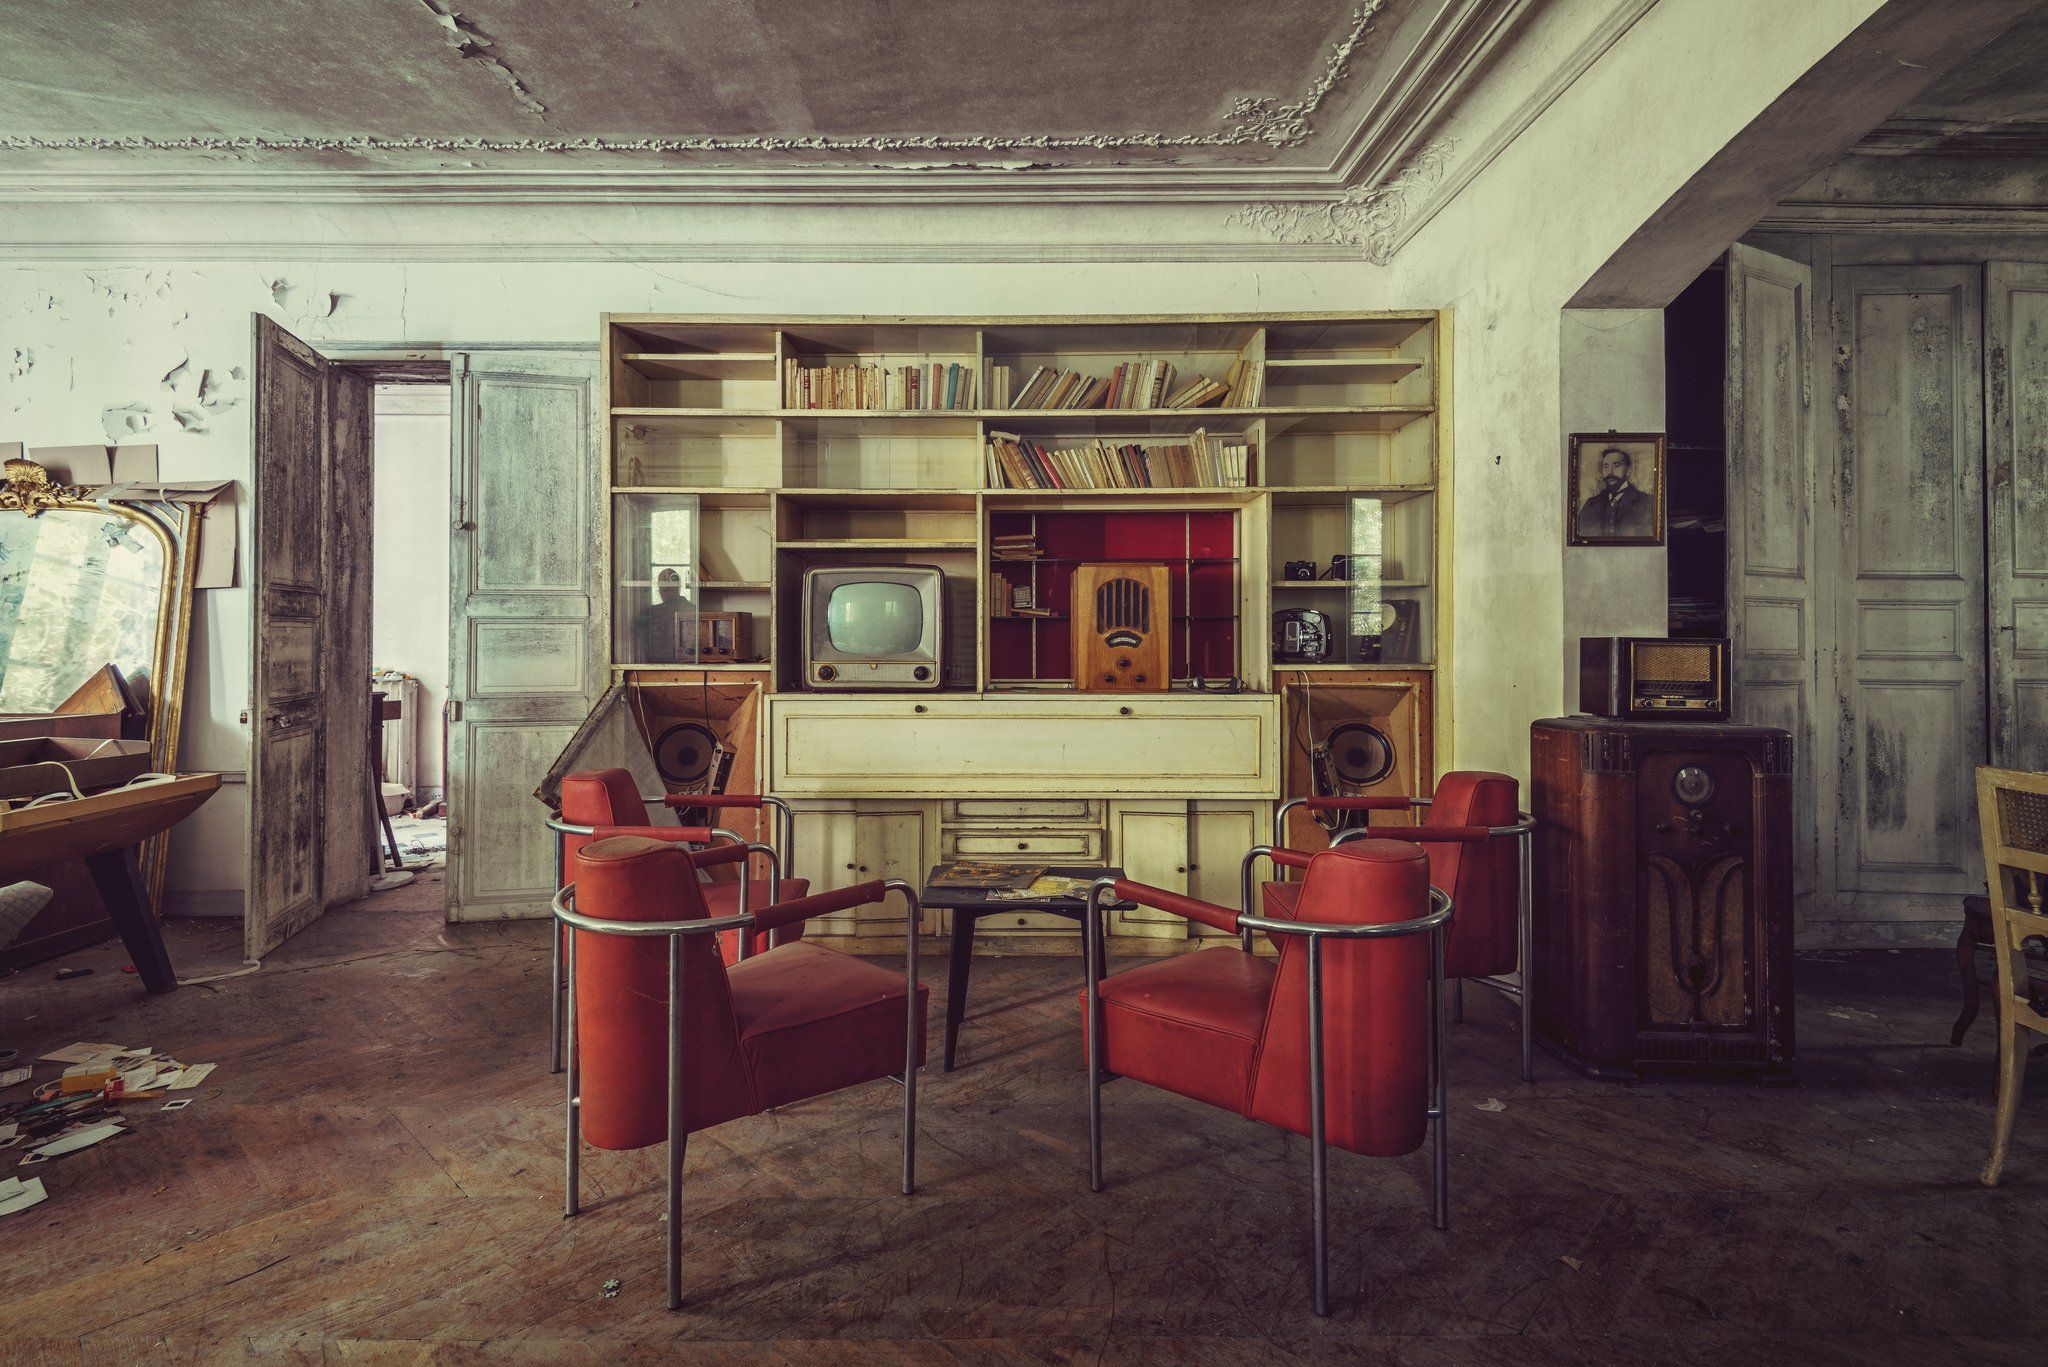 Radios in Lounge - Gina Soden - Photographie contemporaine